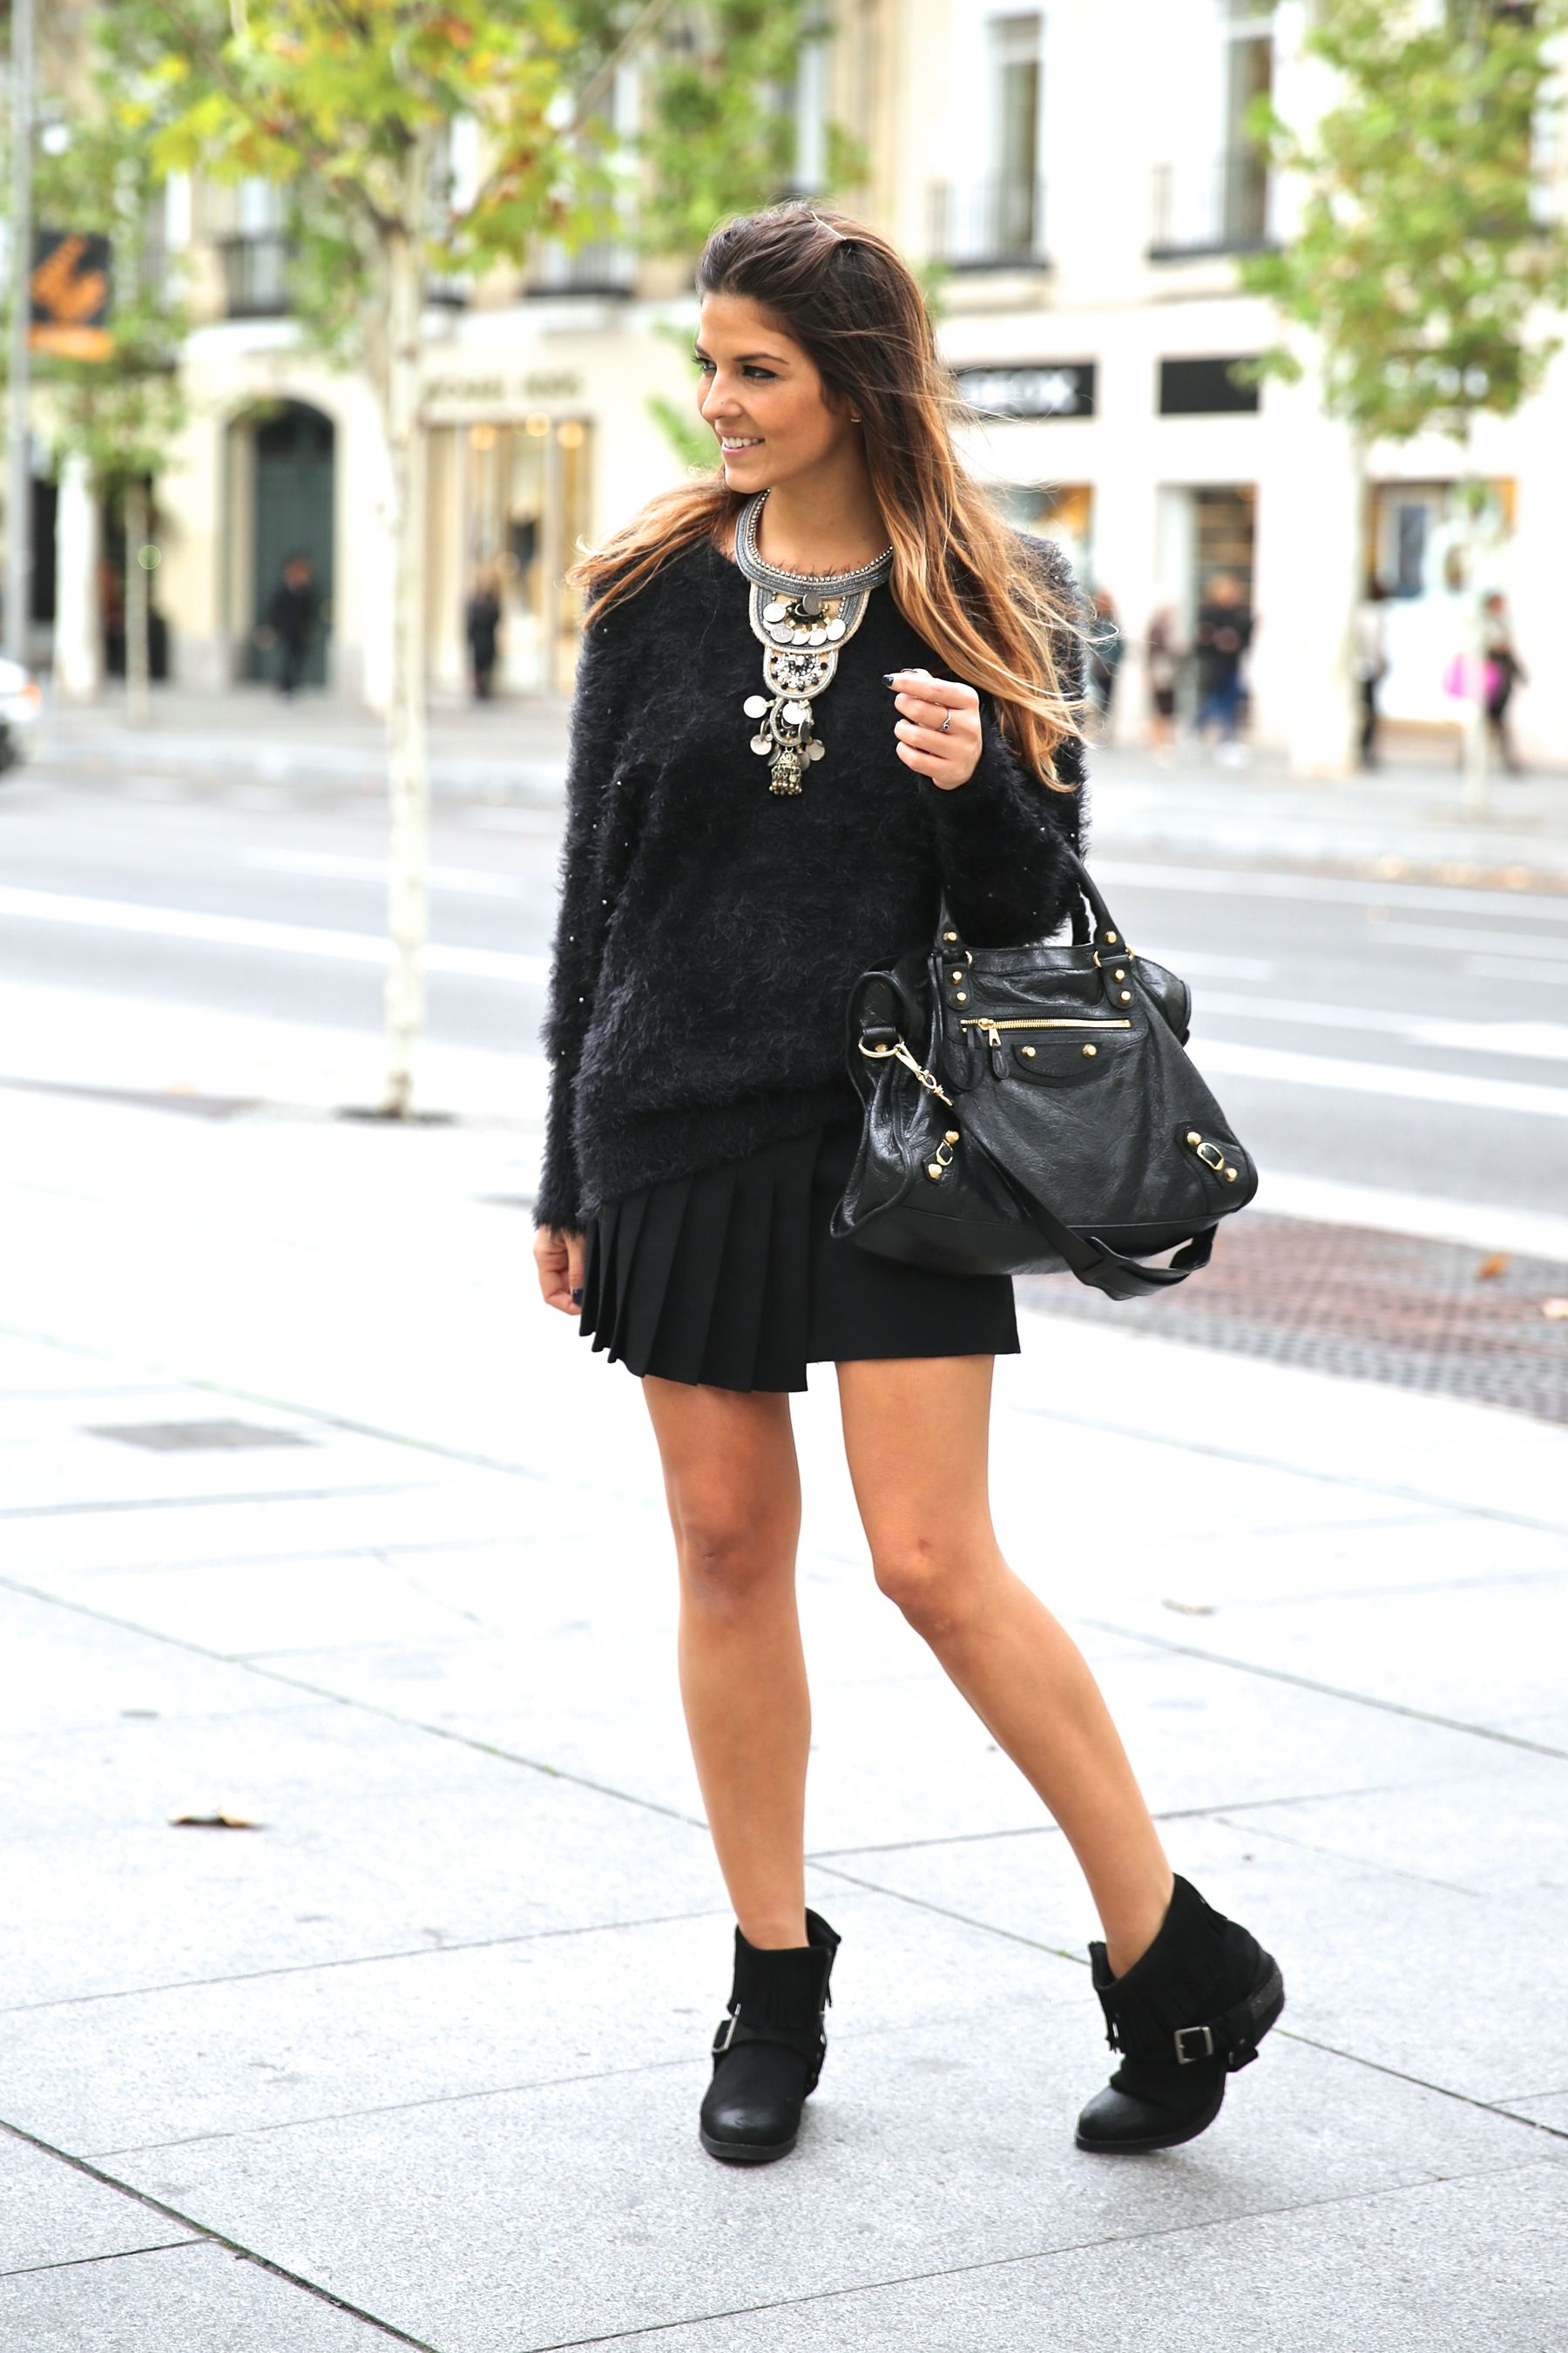 trendy_taste-look-outfit-street_style-ootd-blog-blogger-fashion_spain-moda_españa-balenciaga-city_bag-steve_madden-jersey_pelo-furry_sweater-collar-necklace-skirt-falda_negra-11